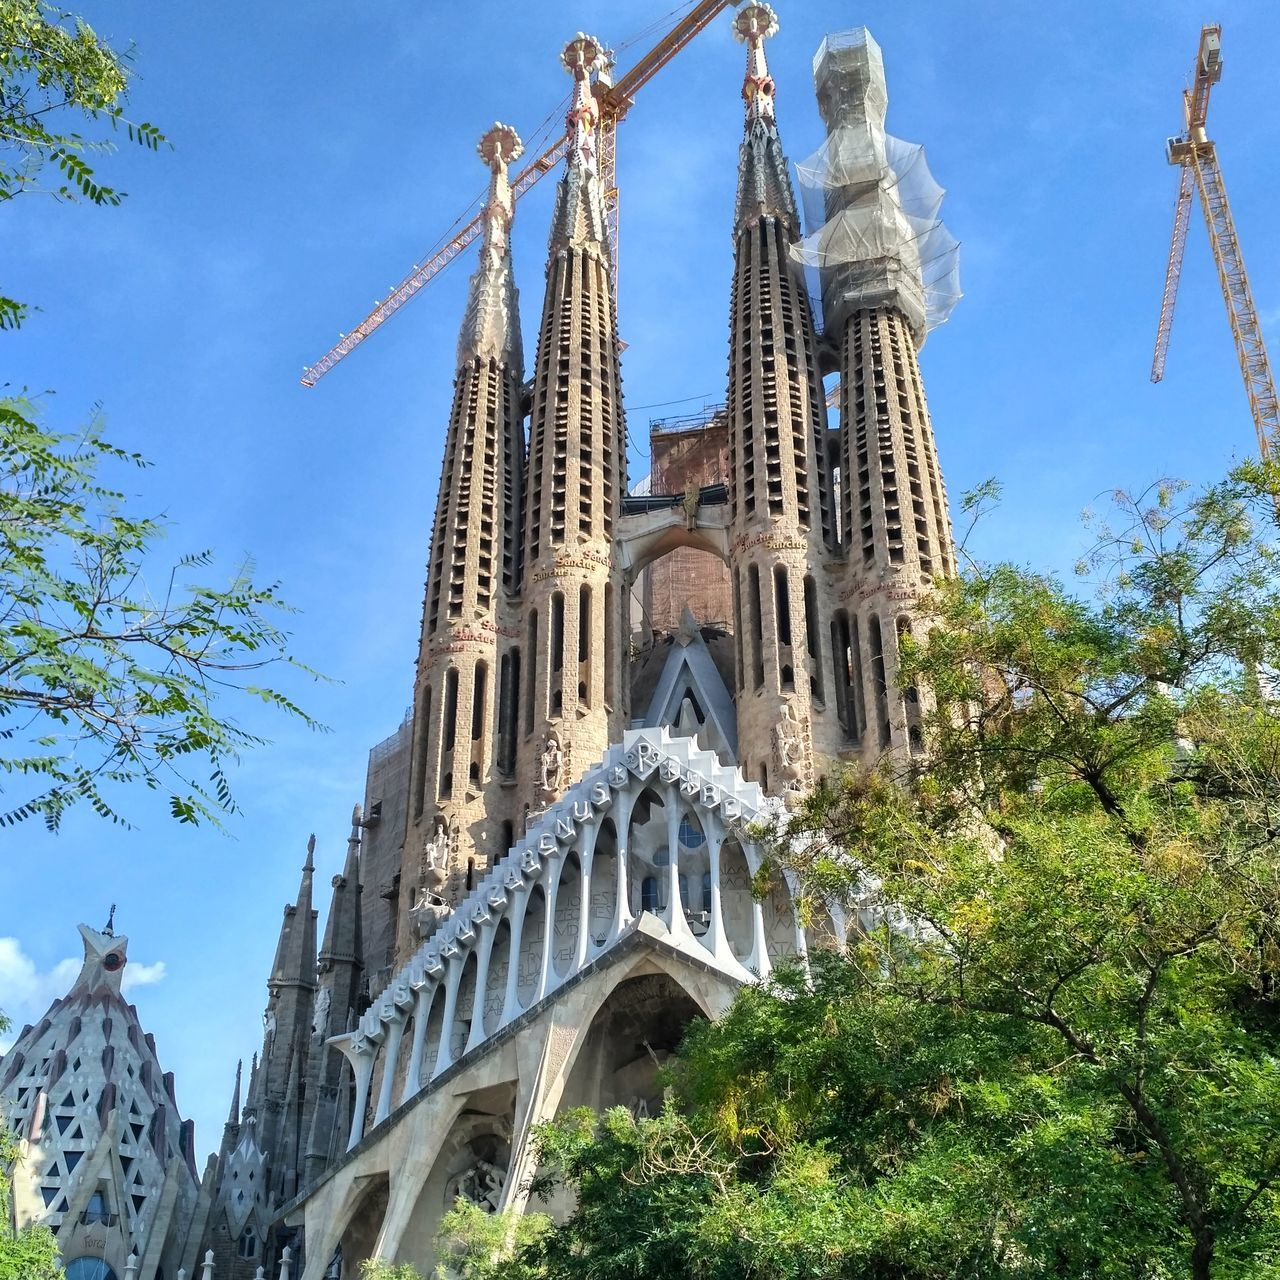 Храм Святого Семейства. Барселона. Sagrada Familia. Barcelona. Spain. Travel Destinations Sagradafamilia Church Chiesa долгострой Церковь храм Outdoors Cultures Clock Tower Day Барселона Испания архитектура SPAIN España история гауди Storia Gaudi Barcelona Gaudi Built Structure Barcelona Architecture